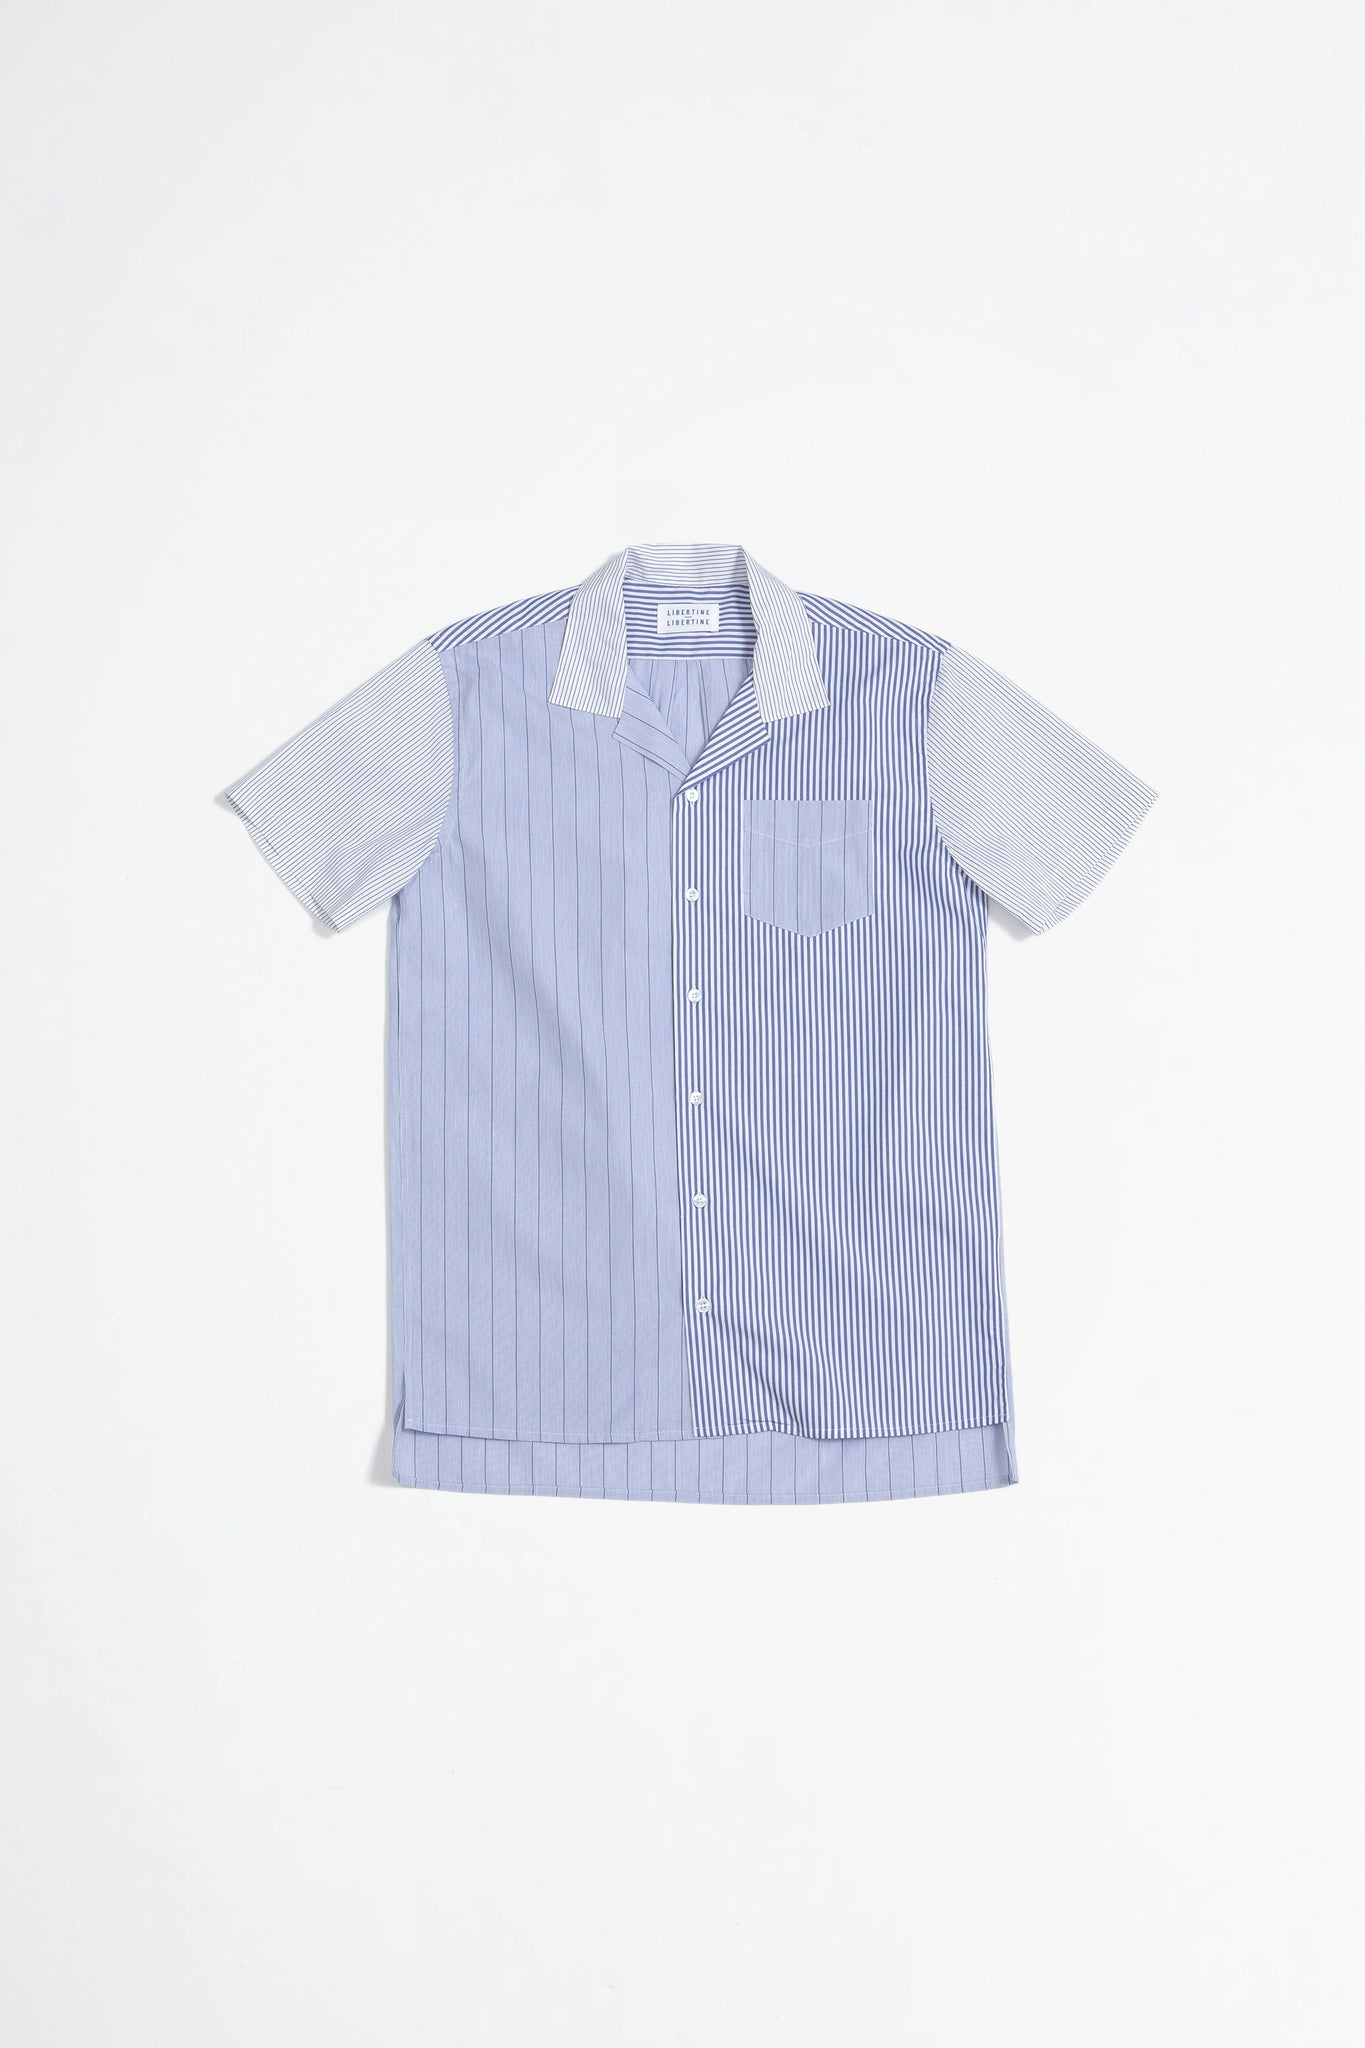 Cave S/S shirt stripe mix 1